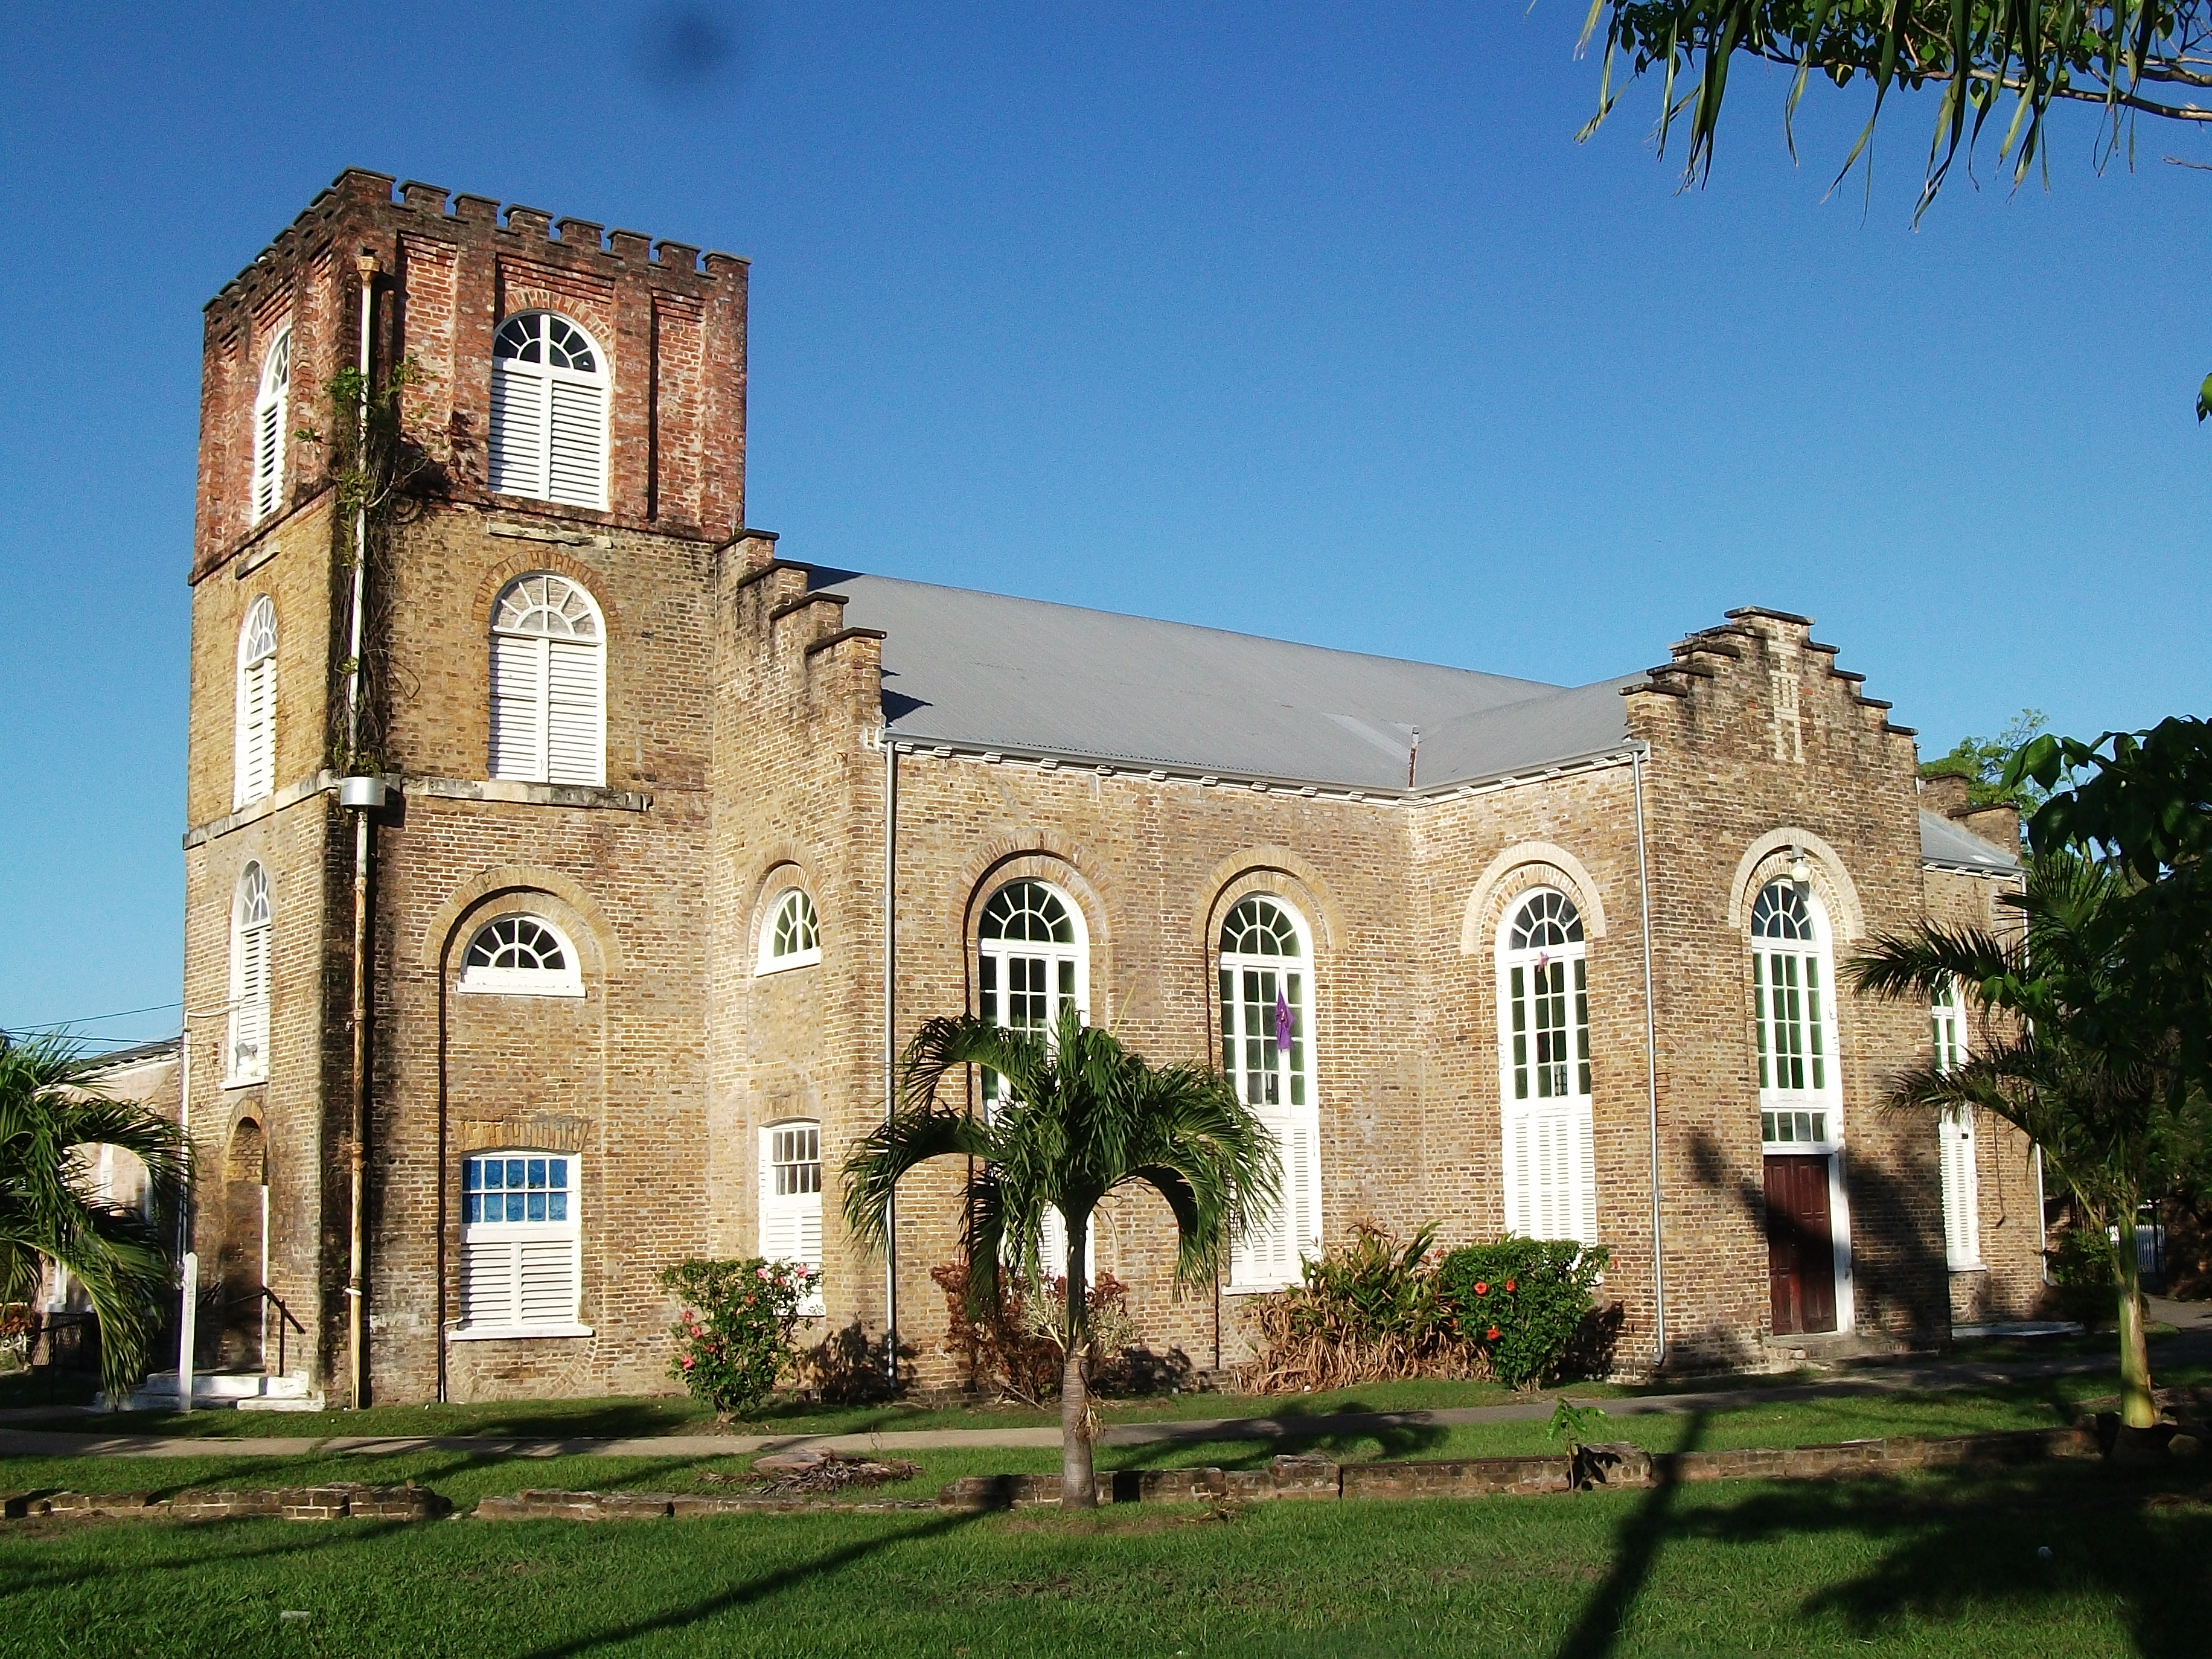 Visit St. John's Cathedral in Belize City